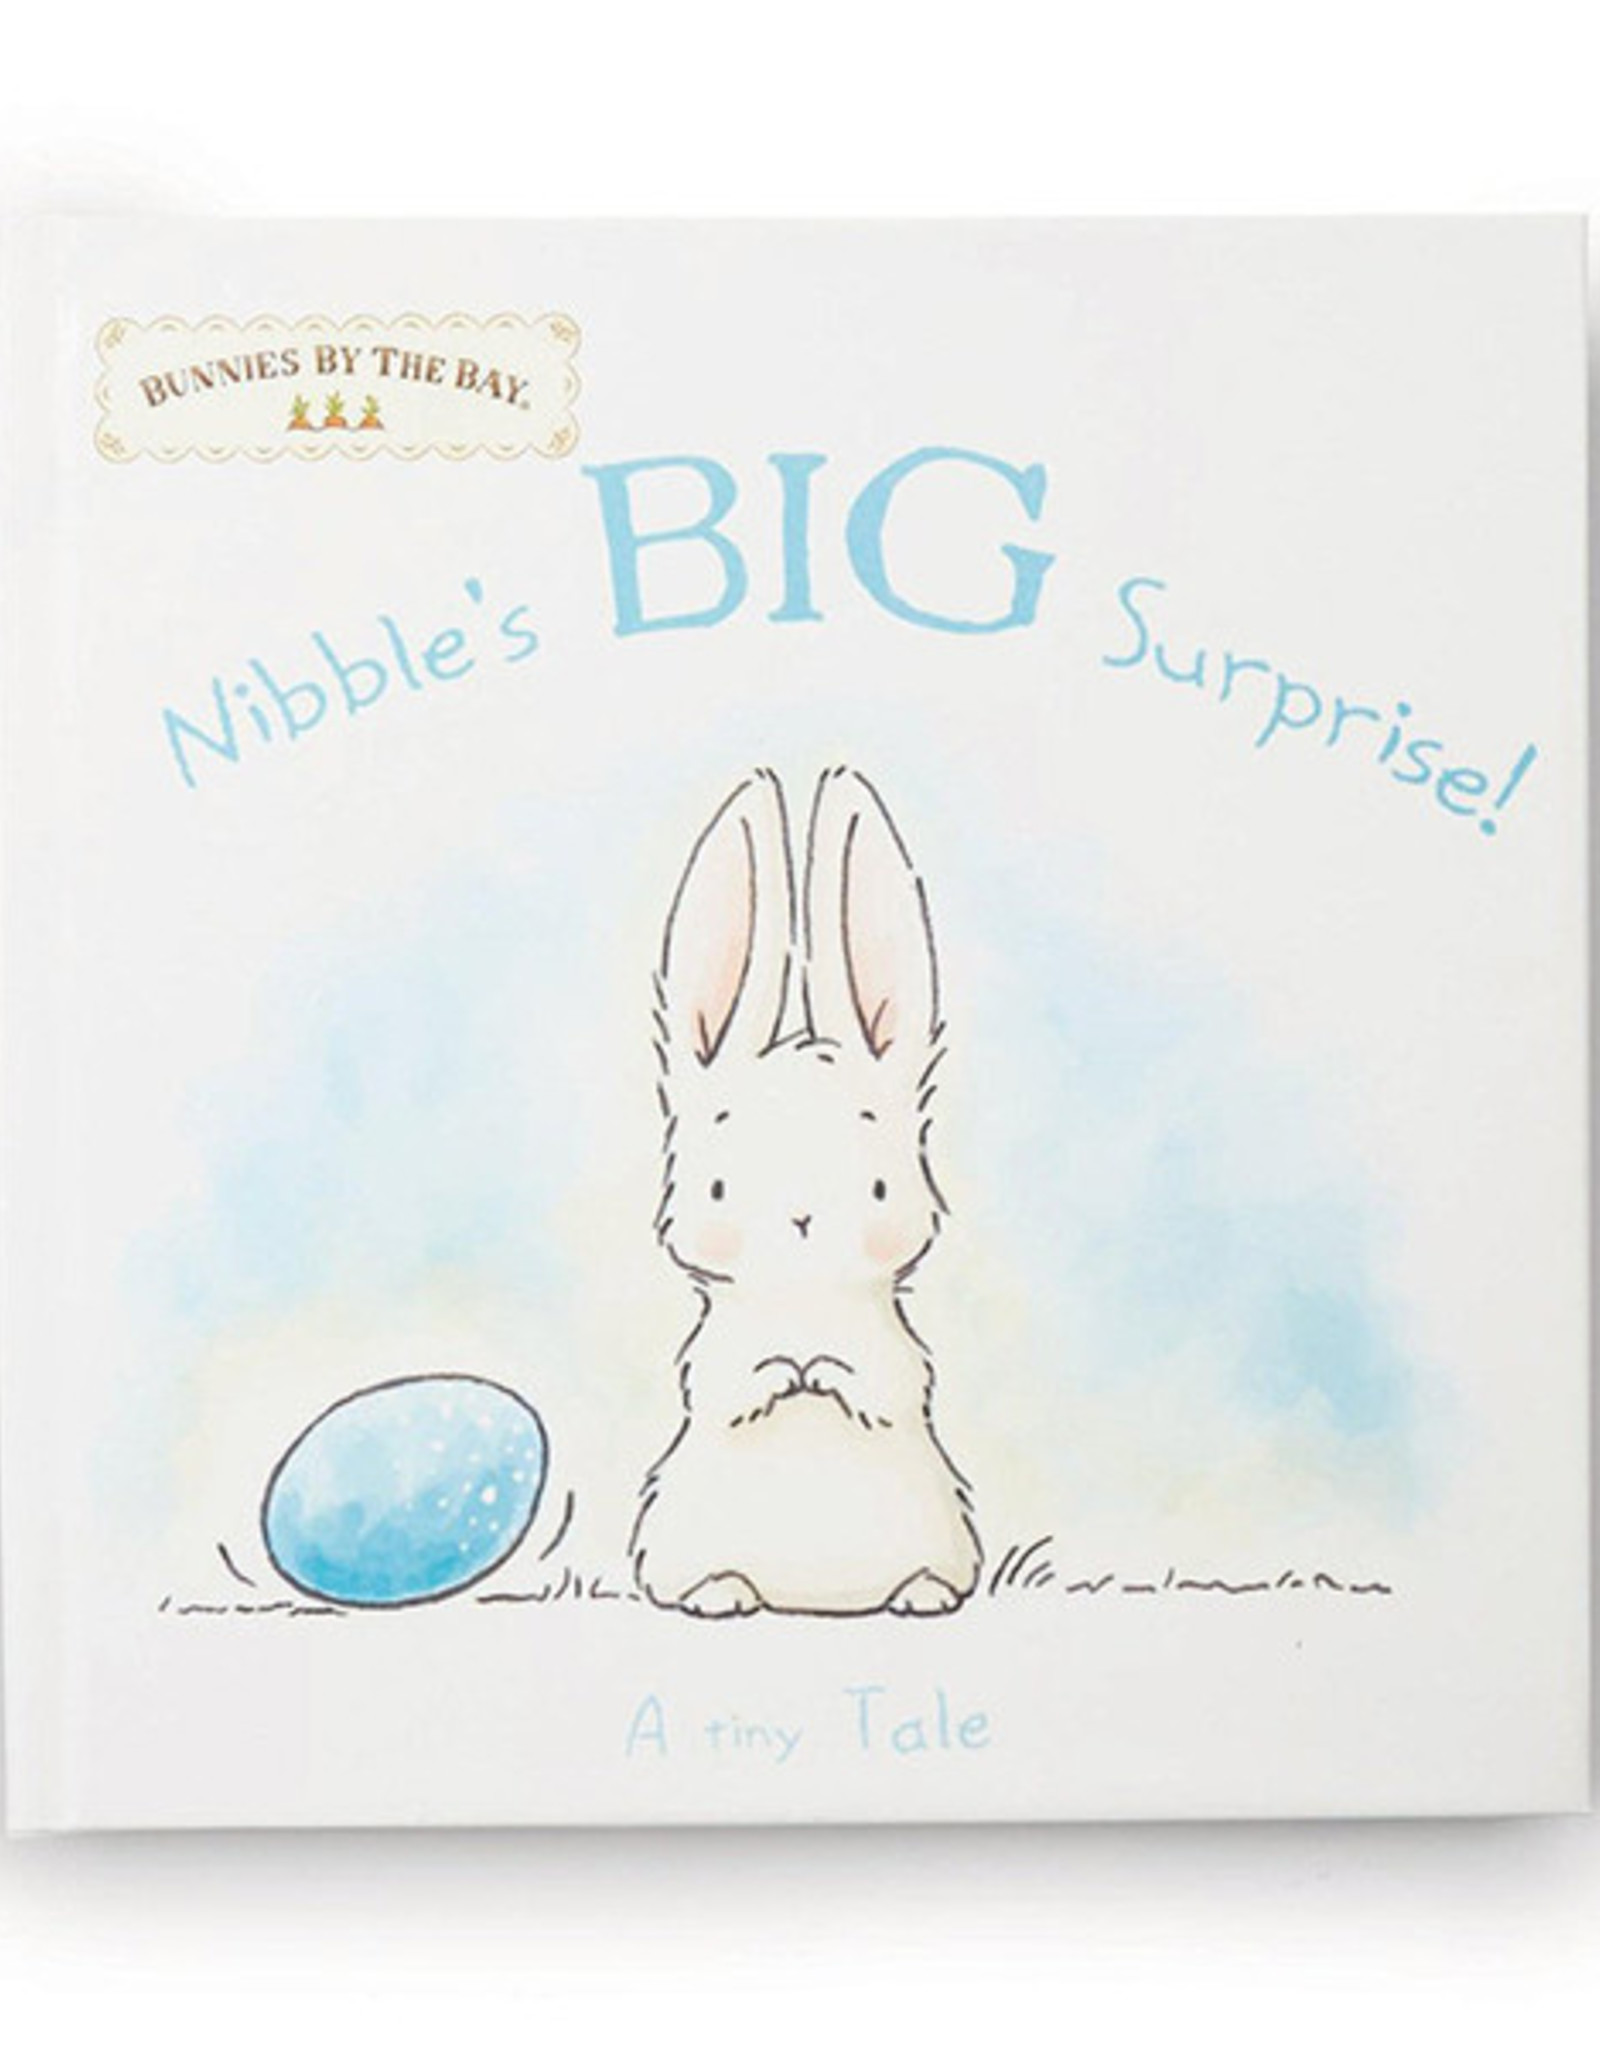 Bunnies By The Bay Book: Nibble's Big Surprise